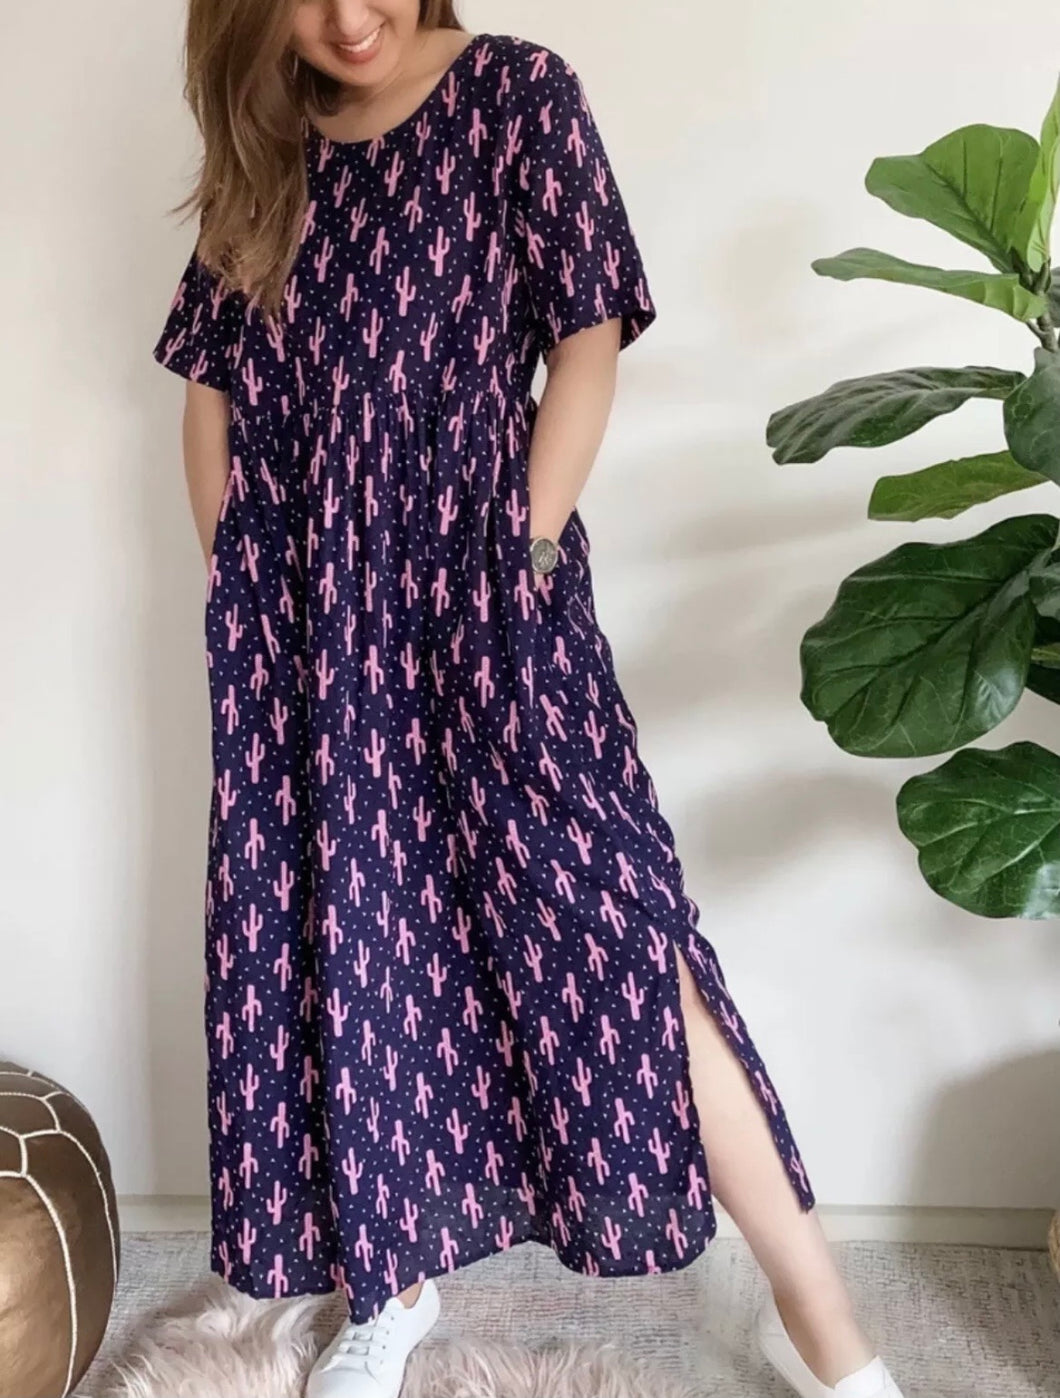 SILVER WISHES Linen Blend Cactus Pocket Midi Maxi Dress Size 6-8 BNWT